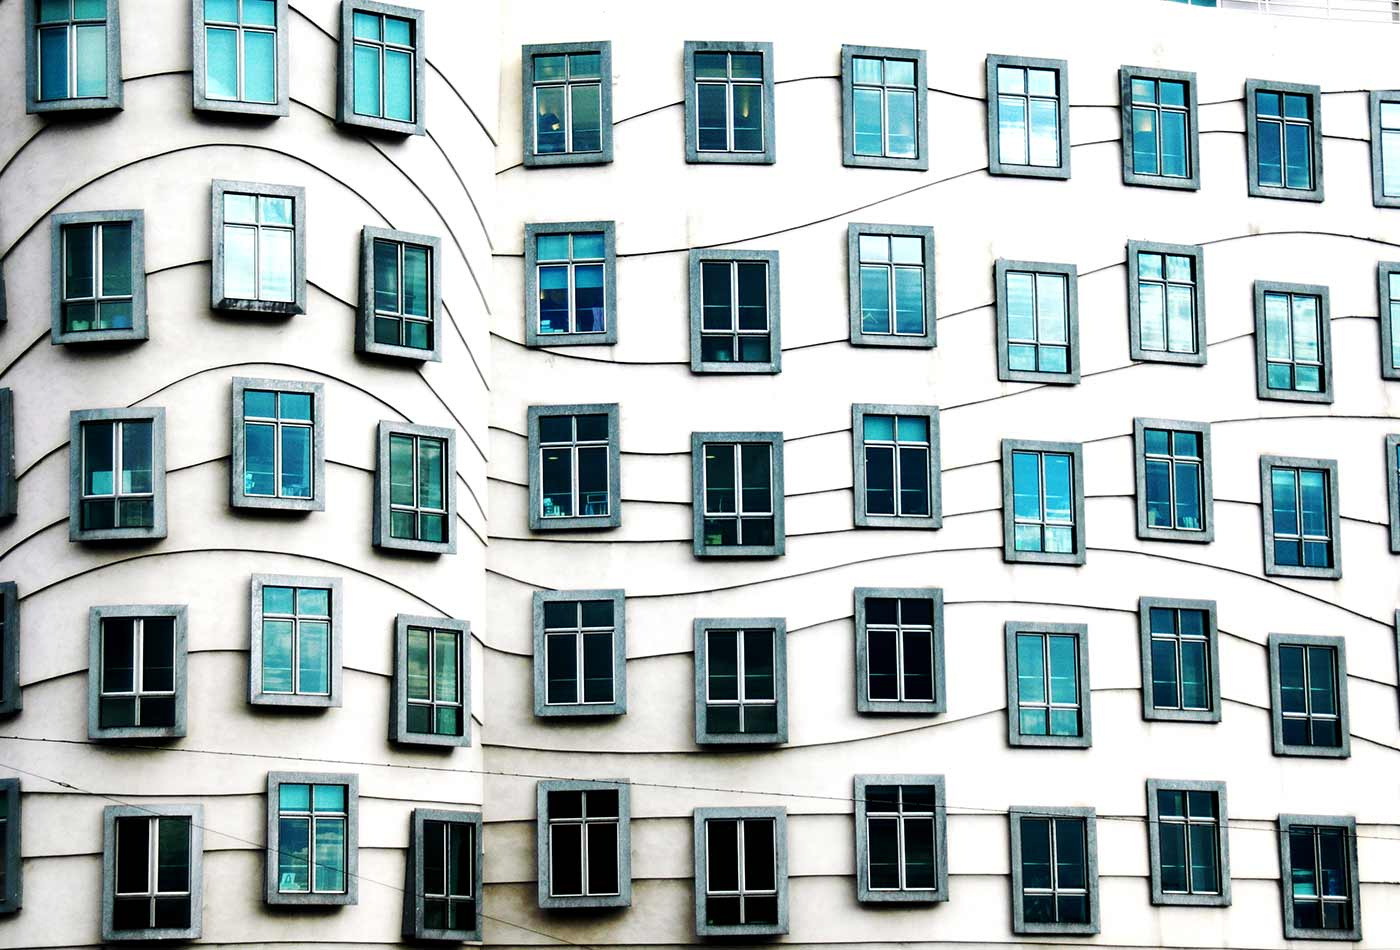 Frank Gehry's Dancing House windows.